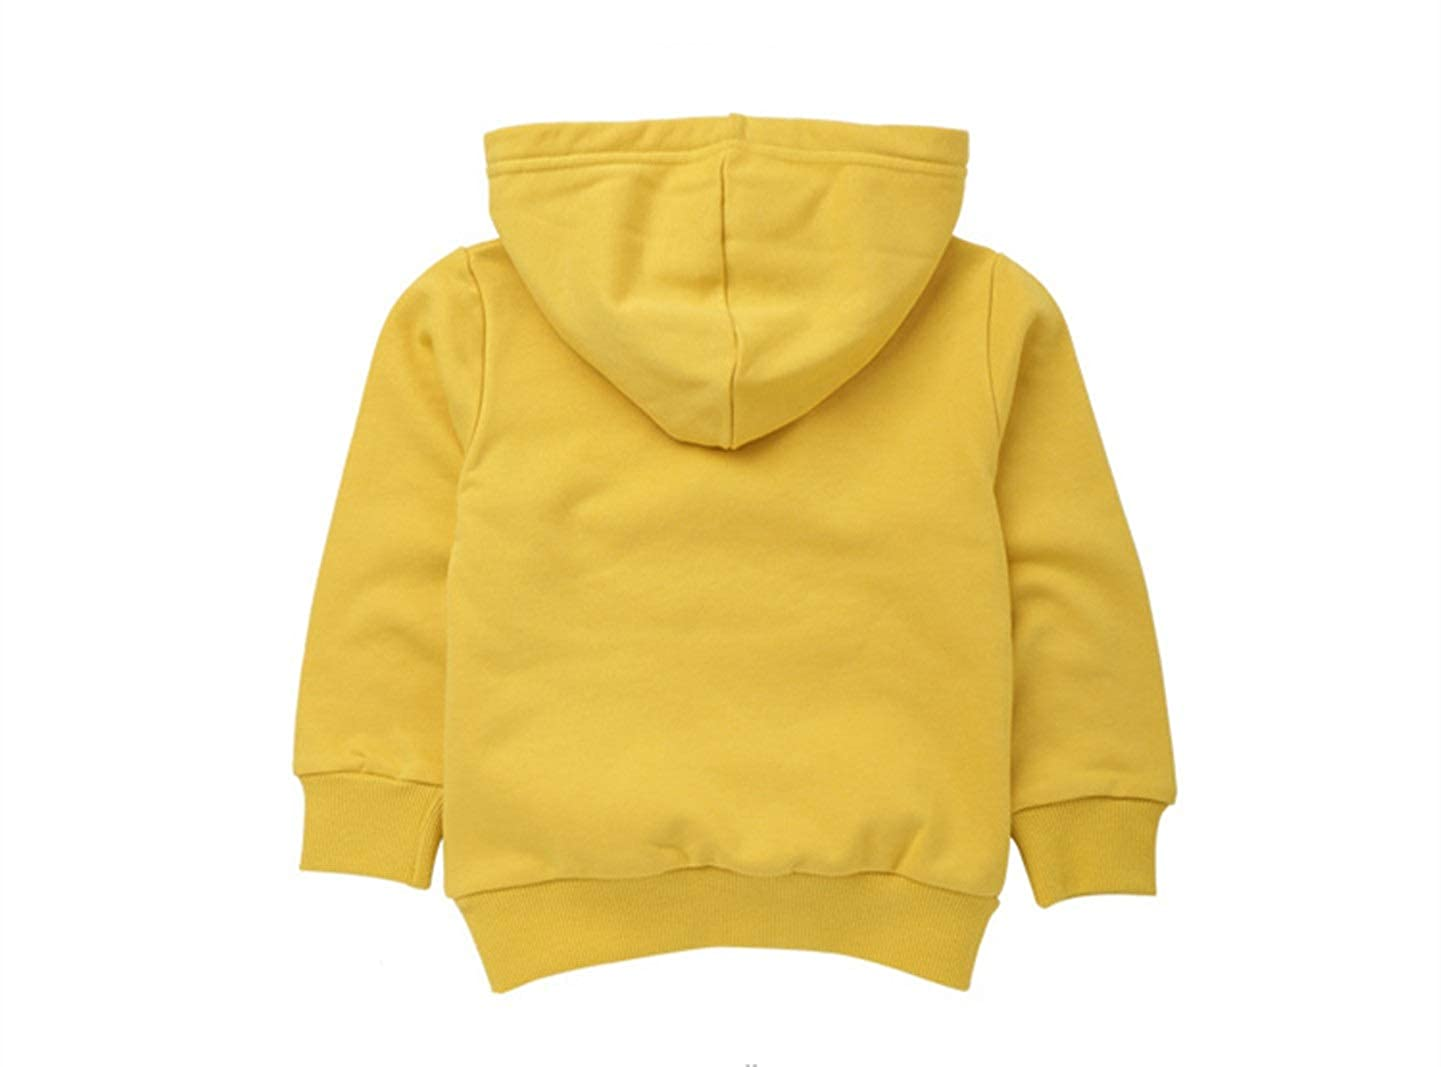 Kids Long Sleeve Sweatshirts Boys Girls Casual 11 Color Cotton Pockets Pullover Hoodies Tops 24M-7T